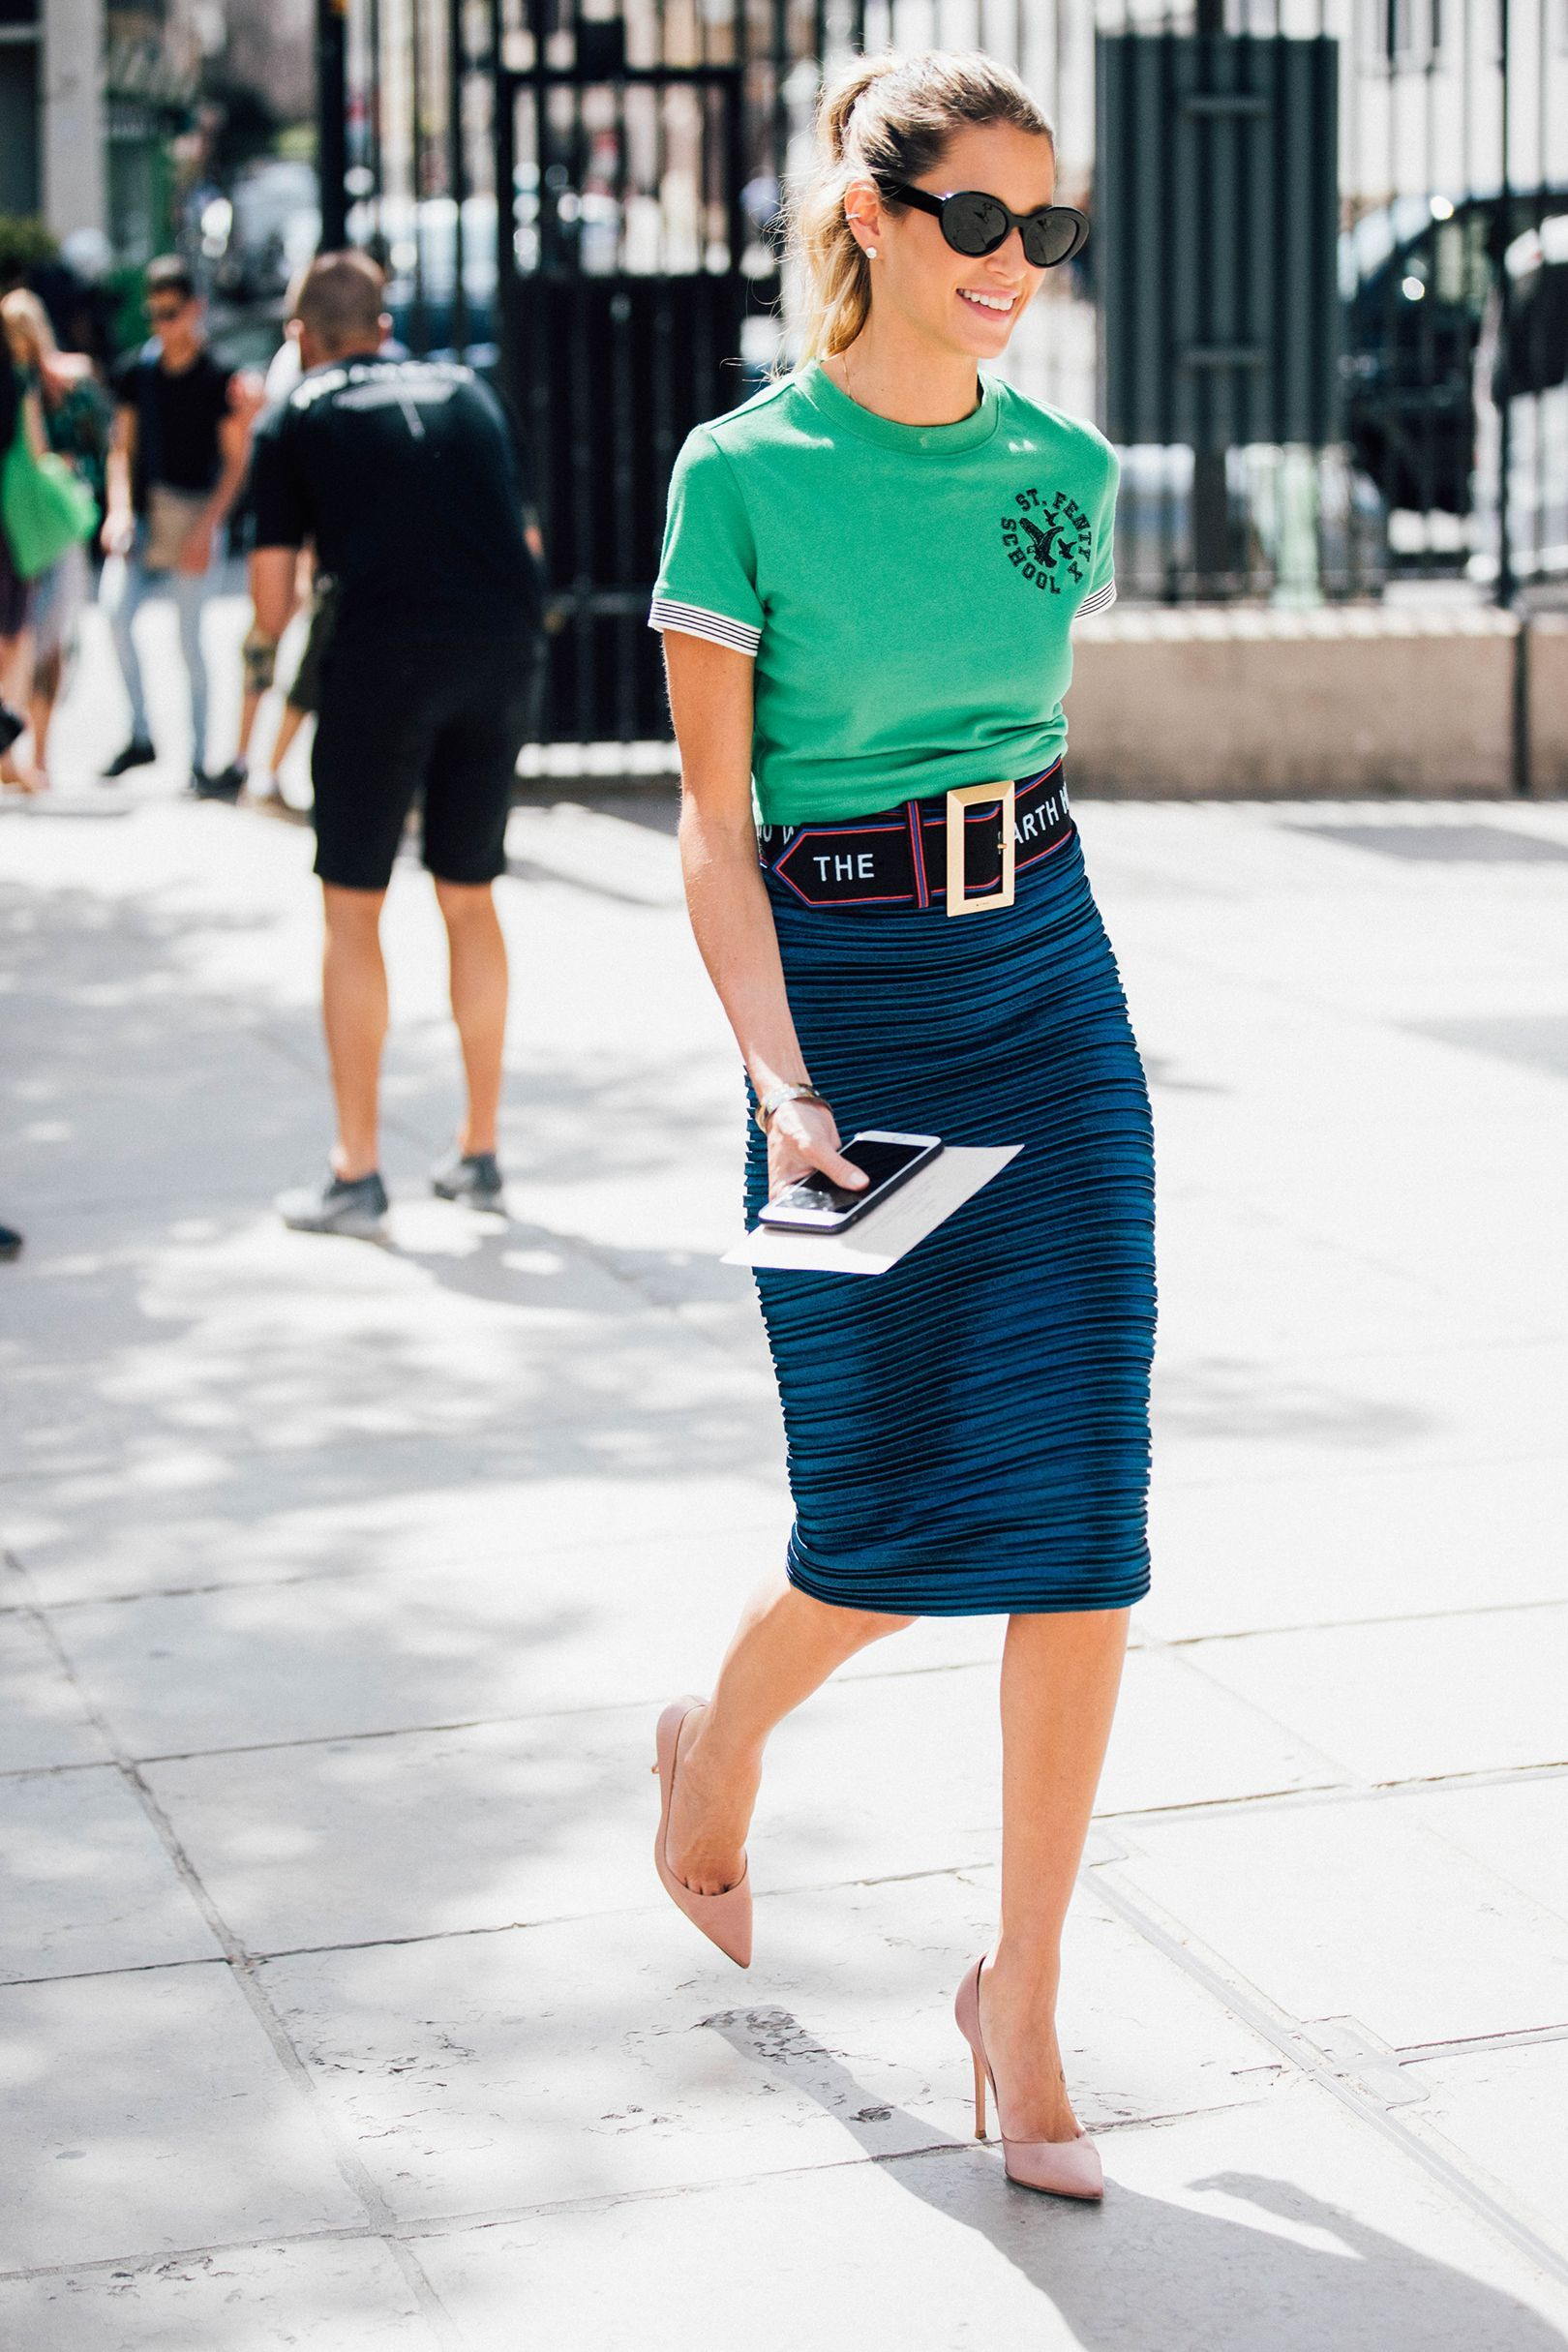 Street forum style flirty in fluttering skirts advise to wear for on every day in 2019